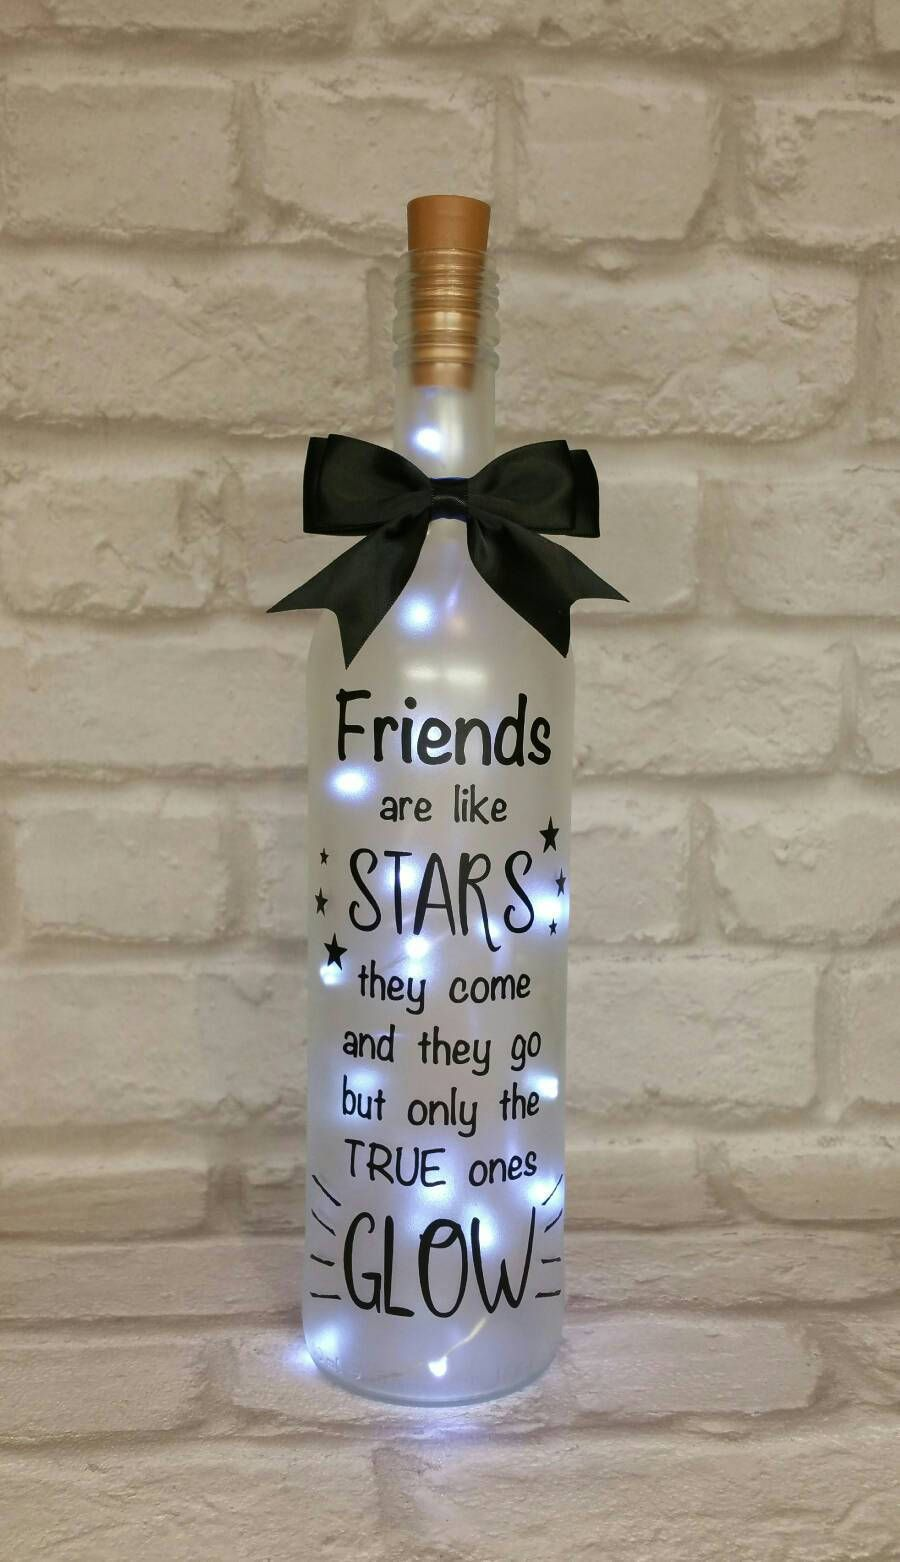 This beautiful light up wine bottle would make a lovely